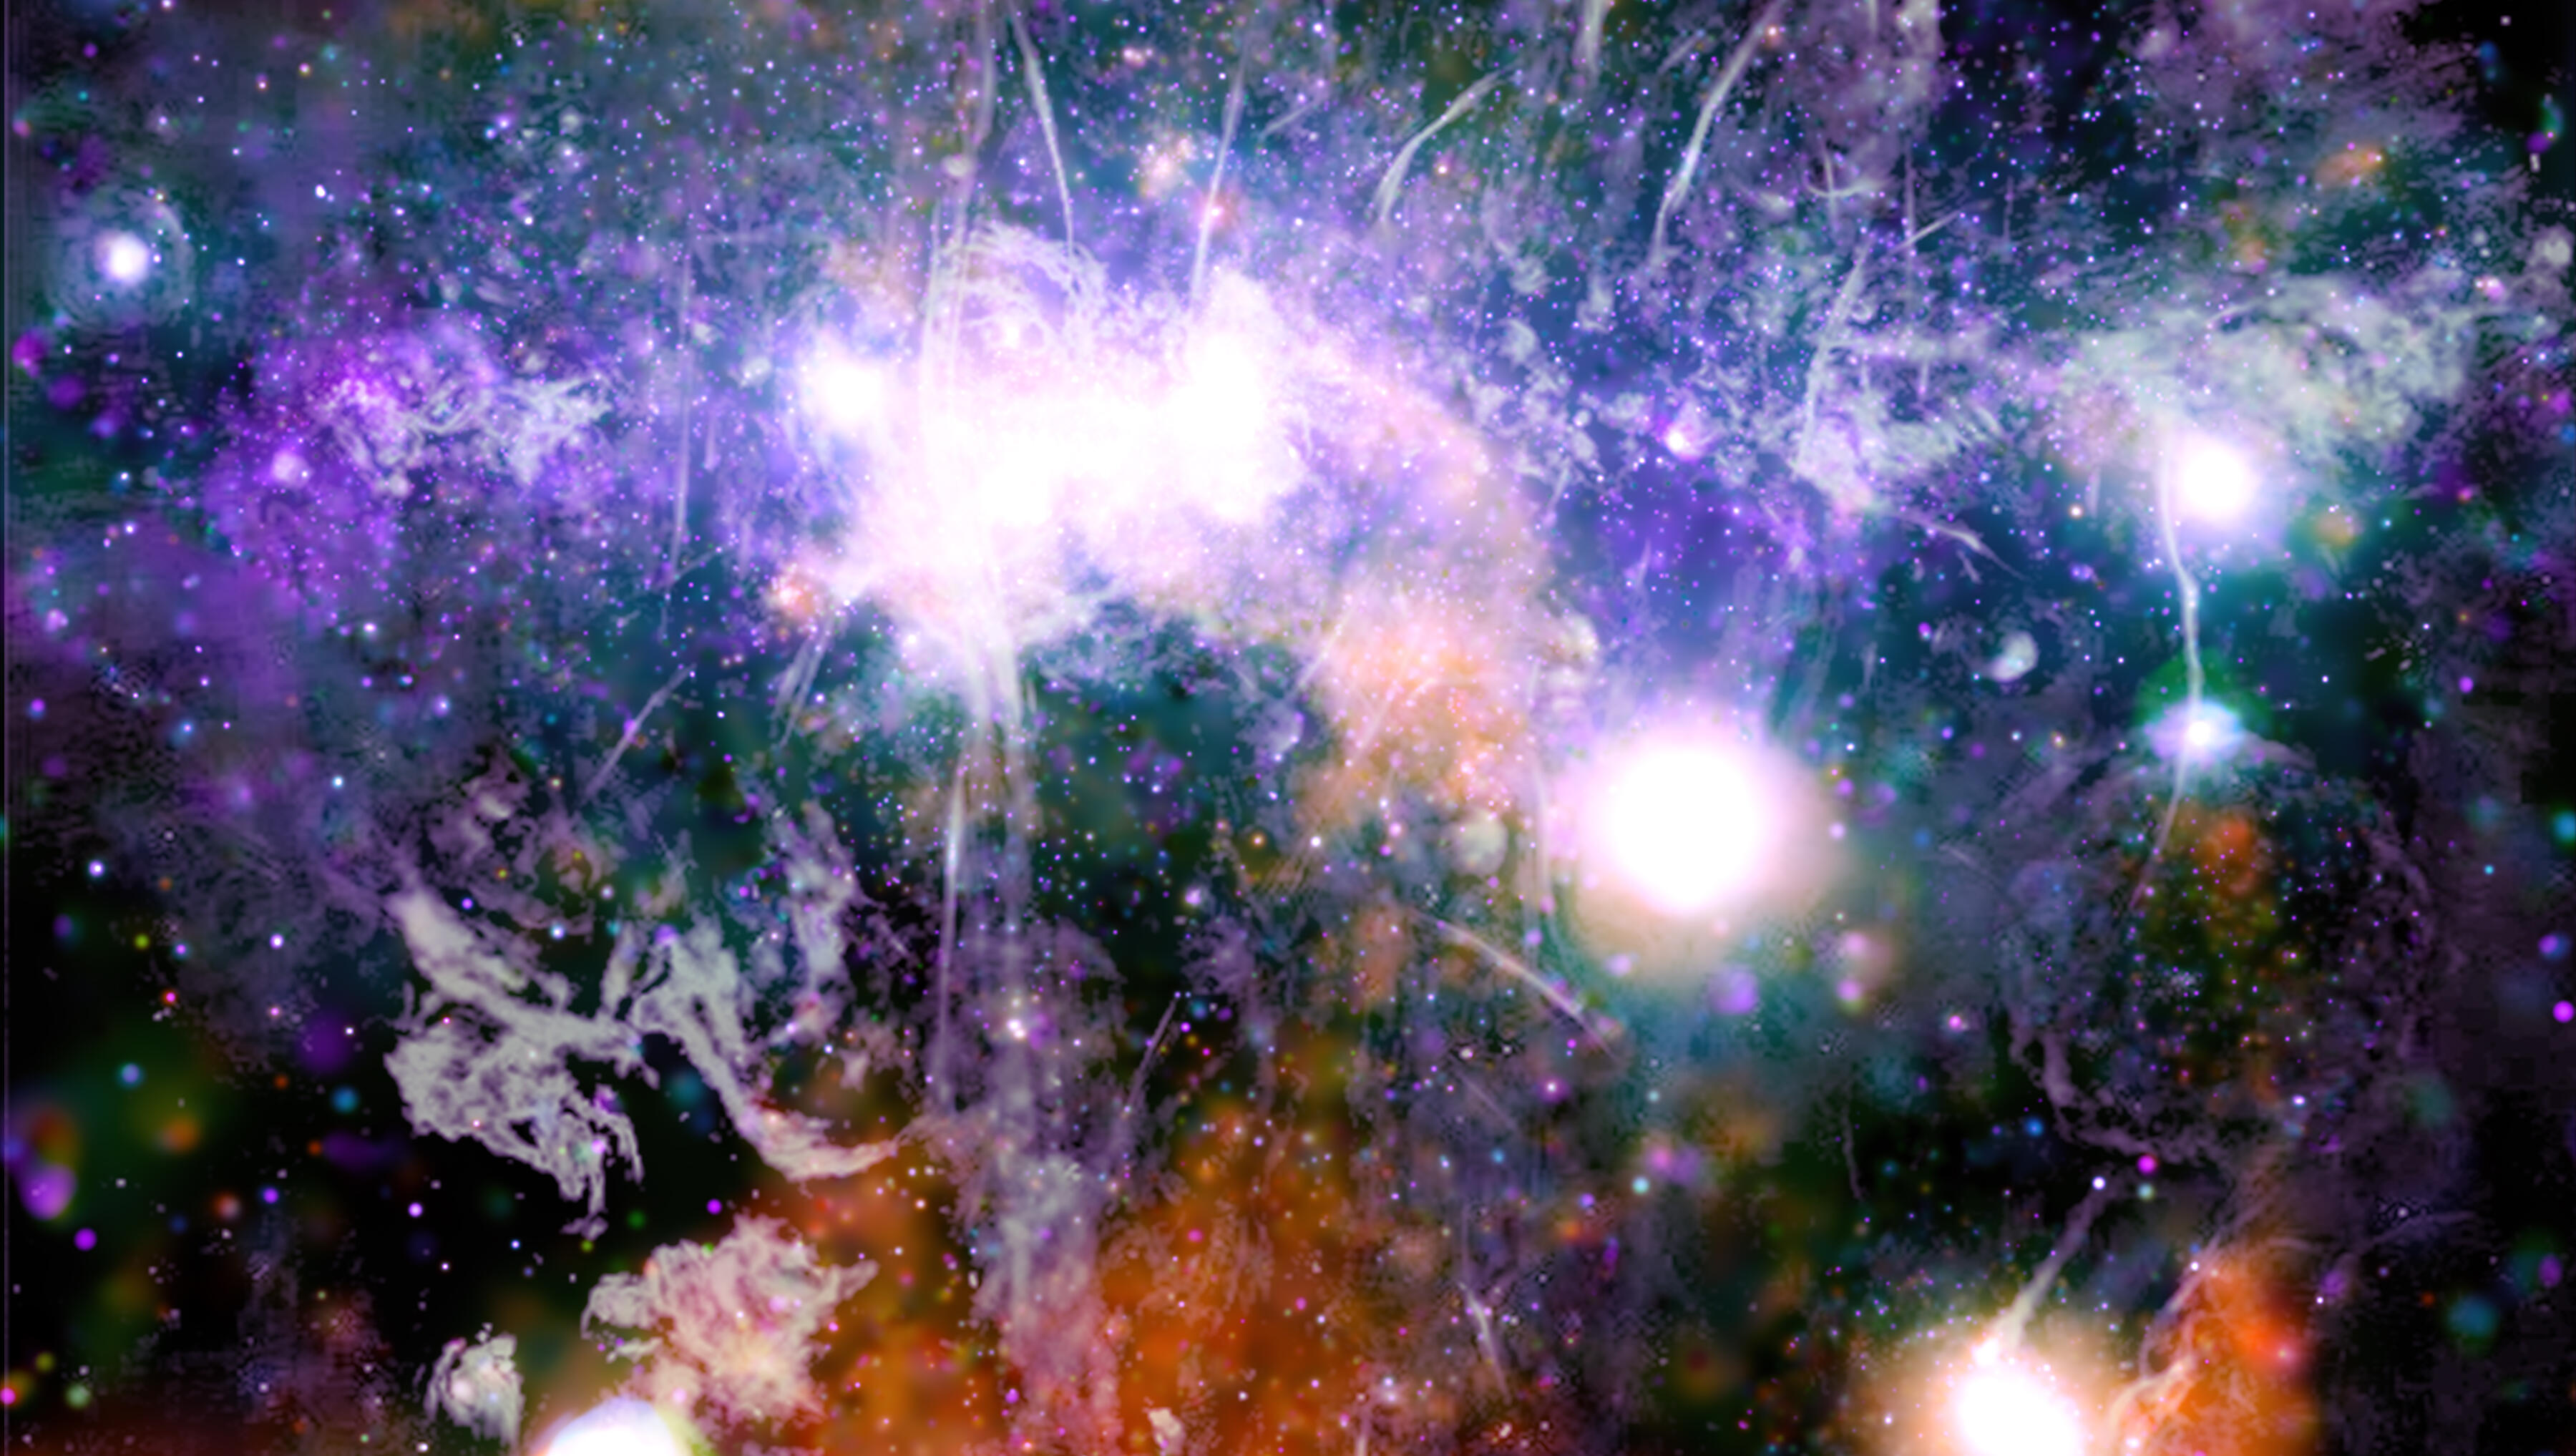 Psychedelic fireworks: NASA's view of Milky Way